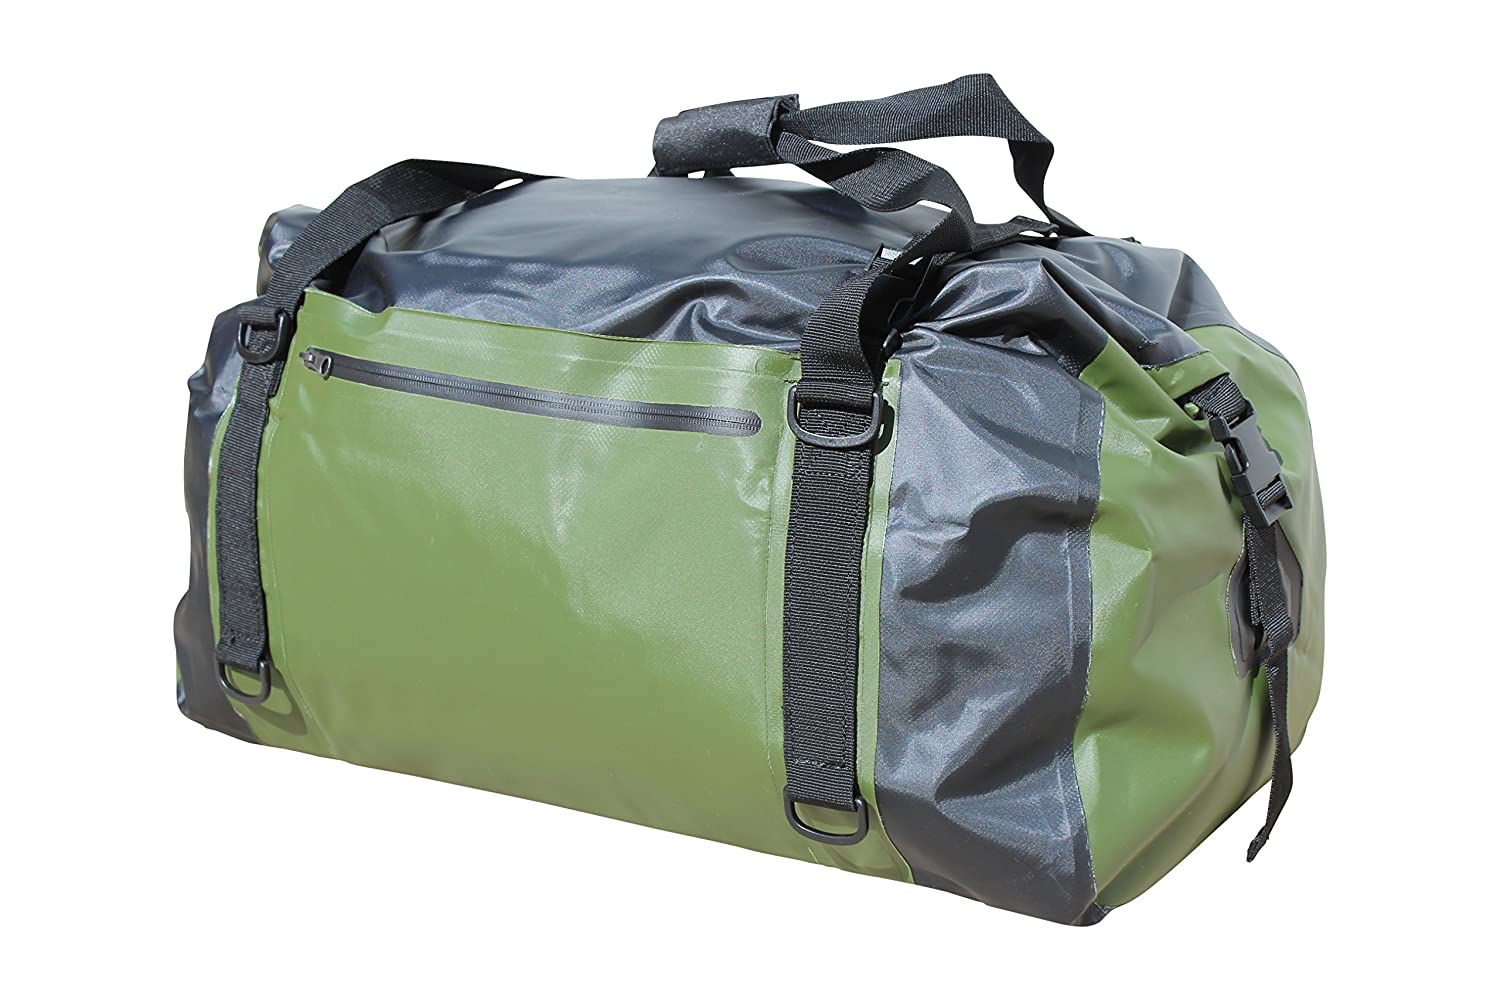 COR Waterproof 60L Duffel Bag 100% Waterproof Dry Bag Duffel Bag -  Lightweight 24760fa30c90c